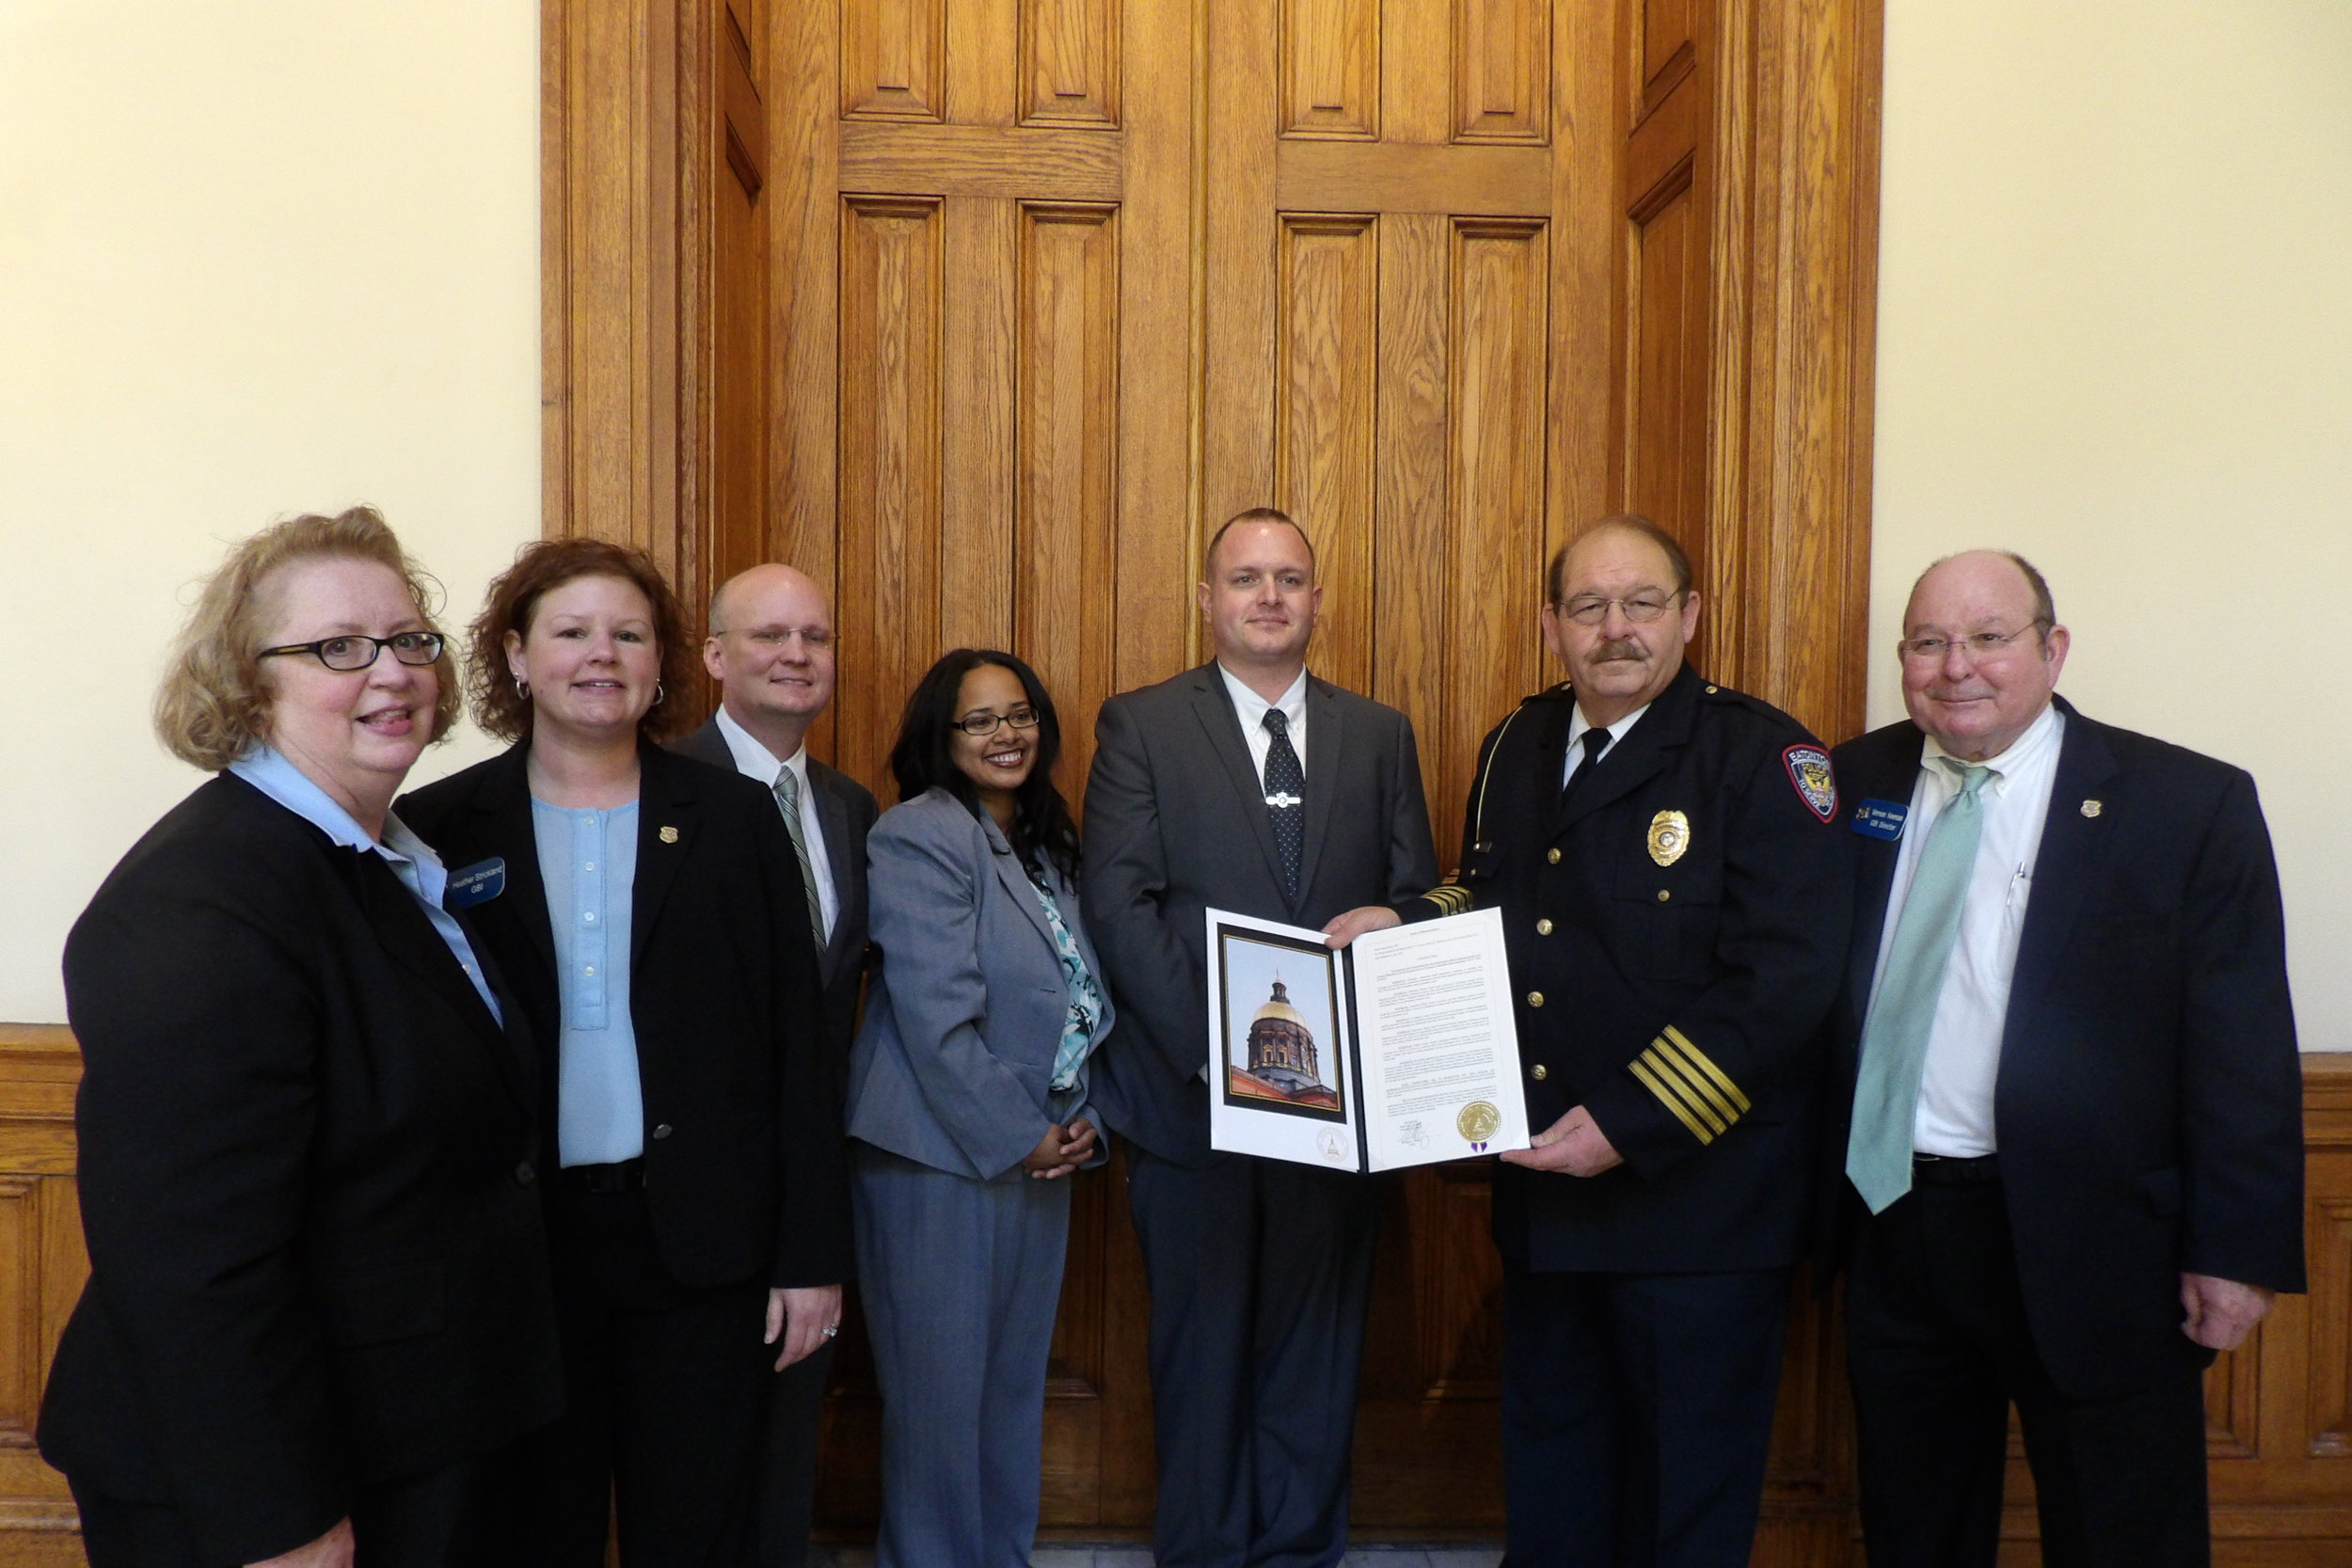 (L-R: Kathy Floyd, GCOA; Heather Strickland, GBI; Jason Marbutt, Cobb County Senior Assistant District Attorney; Erikka Williams, Houston County Chief Assistant District Attorney; Justin Von Behren, Gwinnett County Police Detective; Kent Lawrence, Eatonton Police Chief; and, Vernon Keenan, GBI Director)